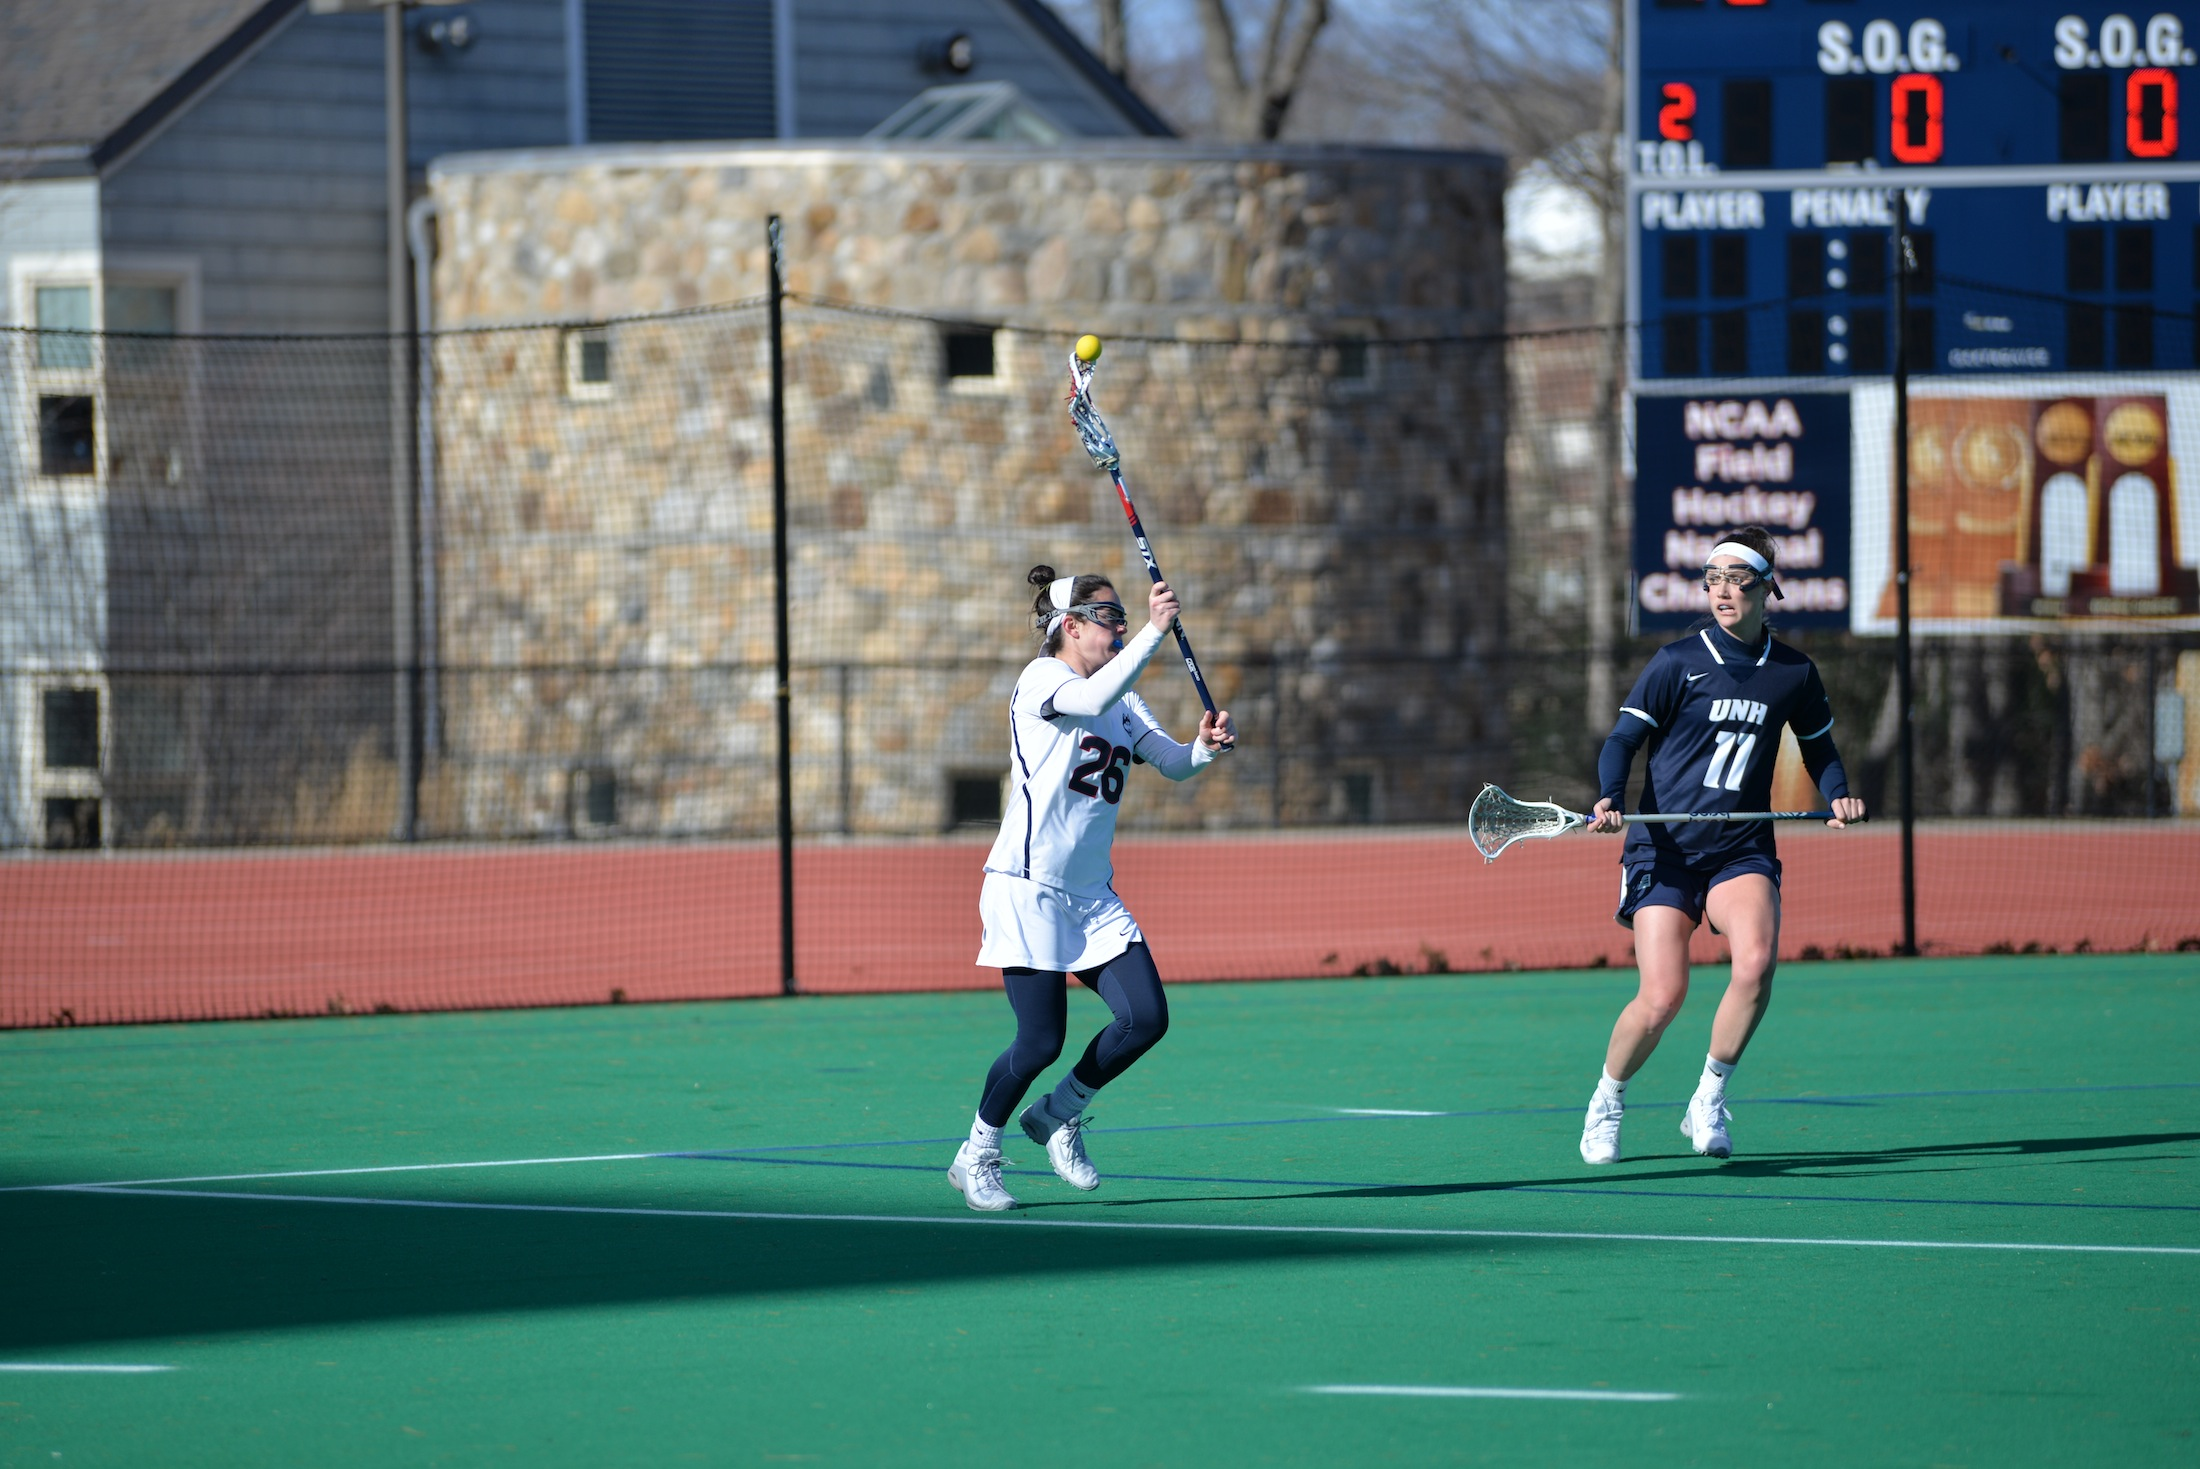 The women's lacrosse team defeats UNH 13-9 on Sunday afternoon at the Sherman Family Sports Complex. UConn held the lead for the entire game. (Amar Batra/The Daily Campus)